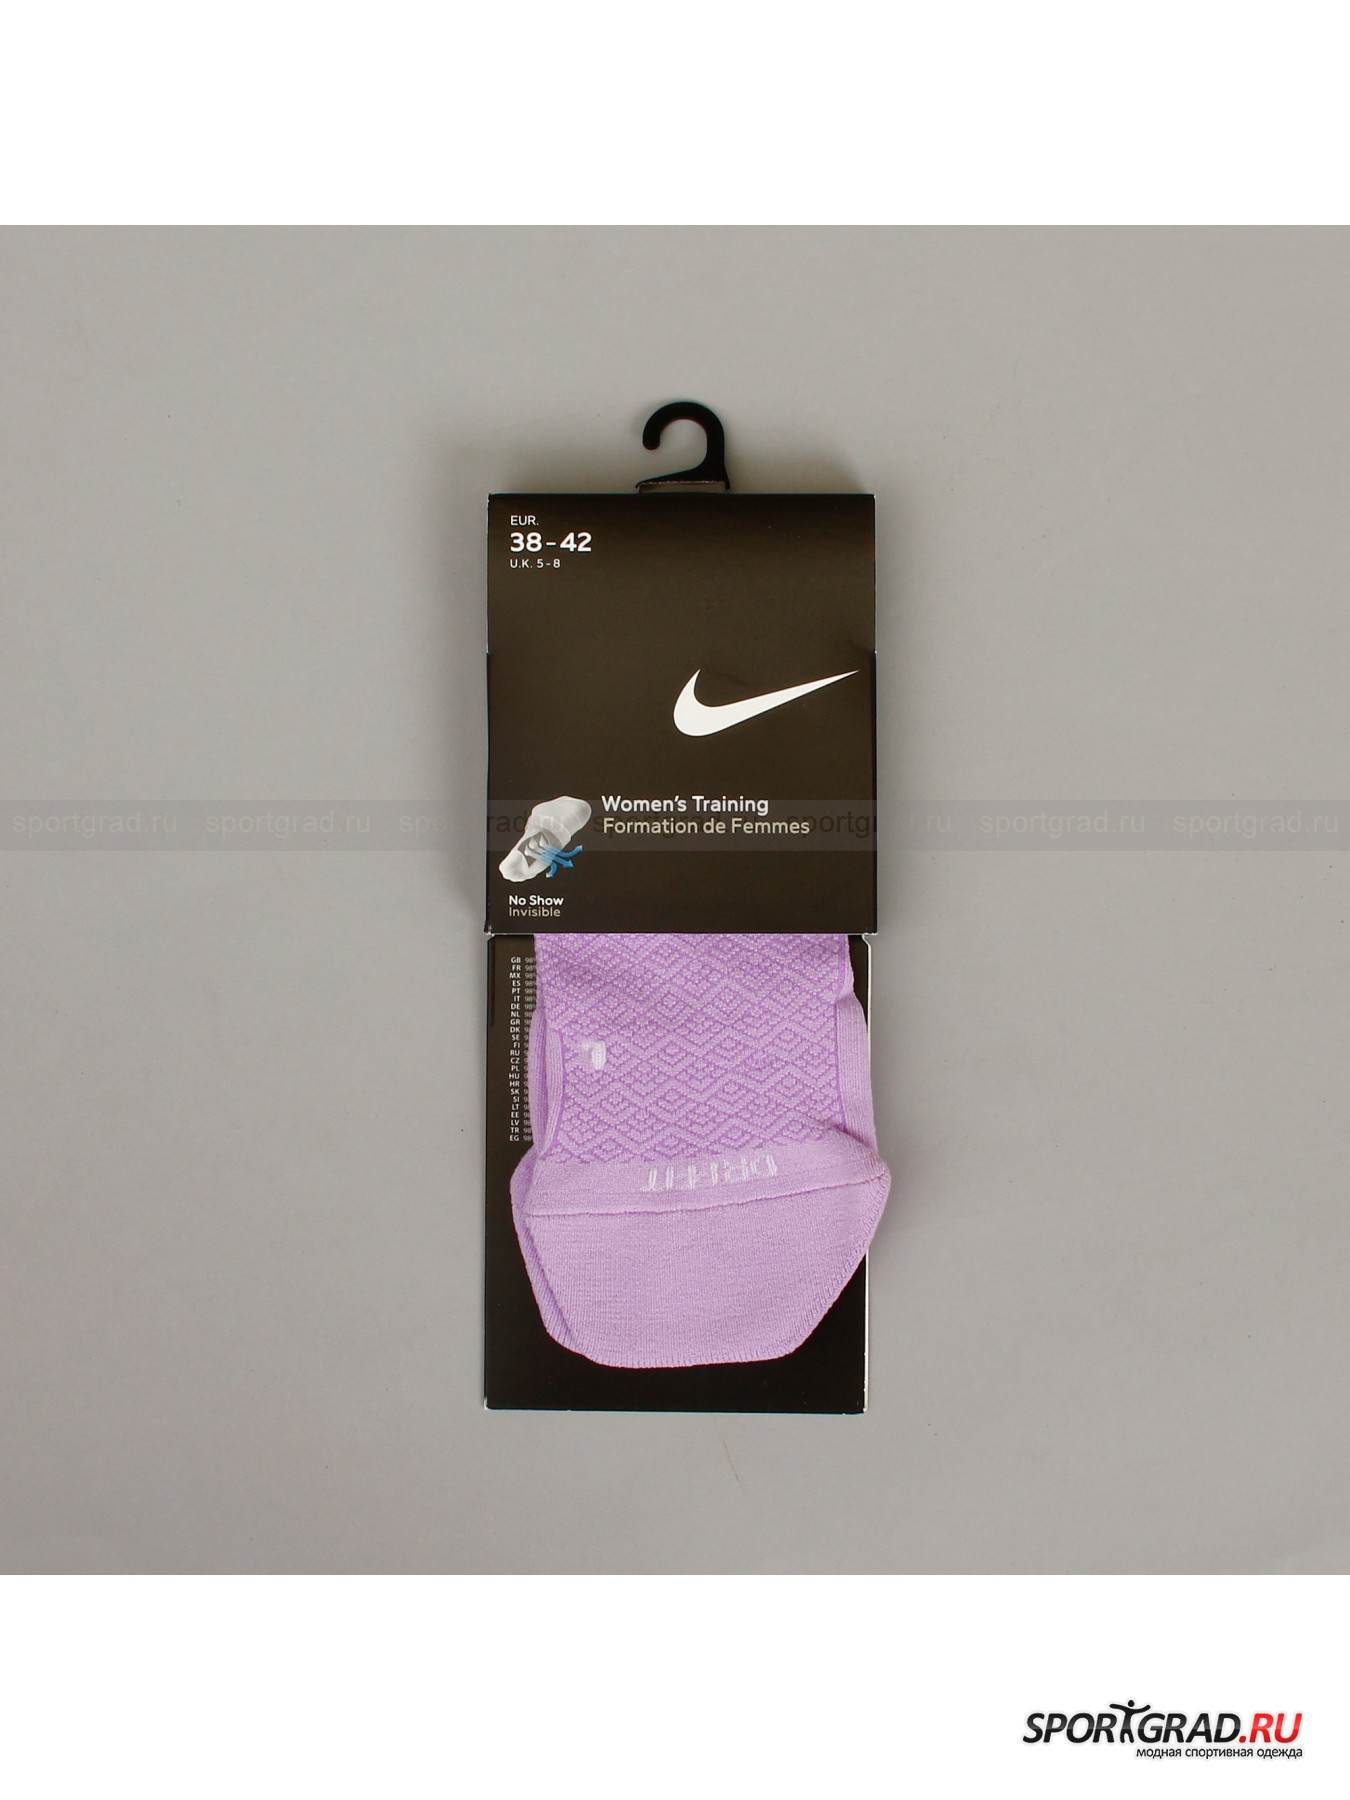 Носки жен training Series 1 No Show NIKE